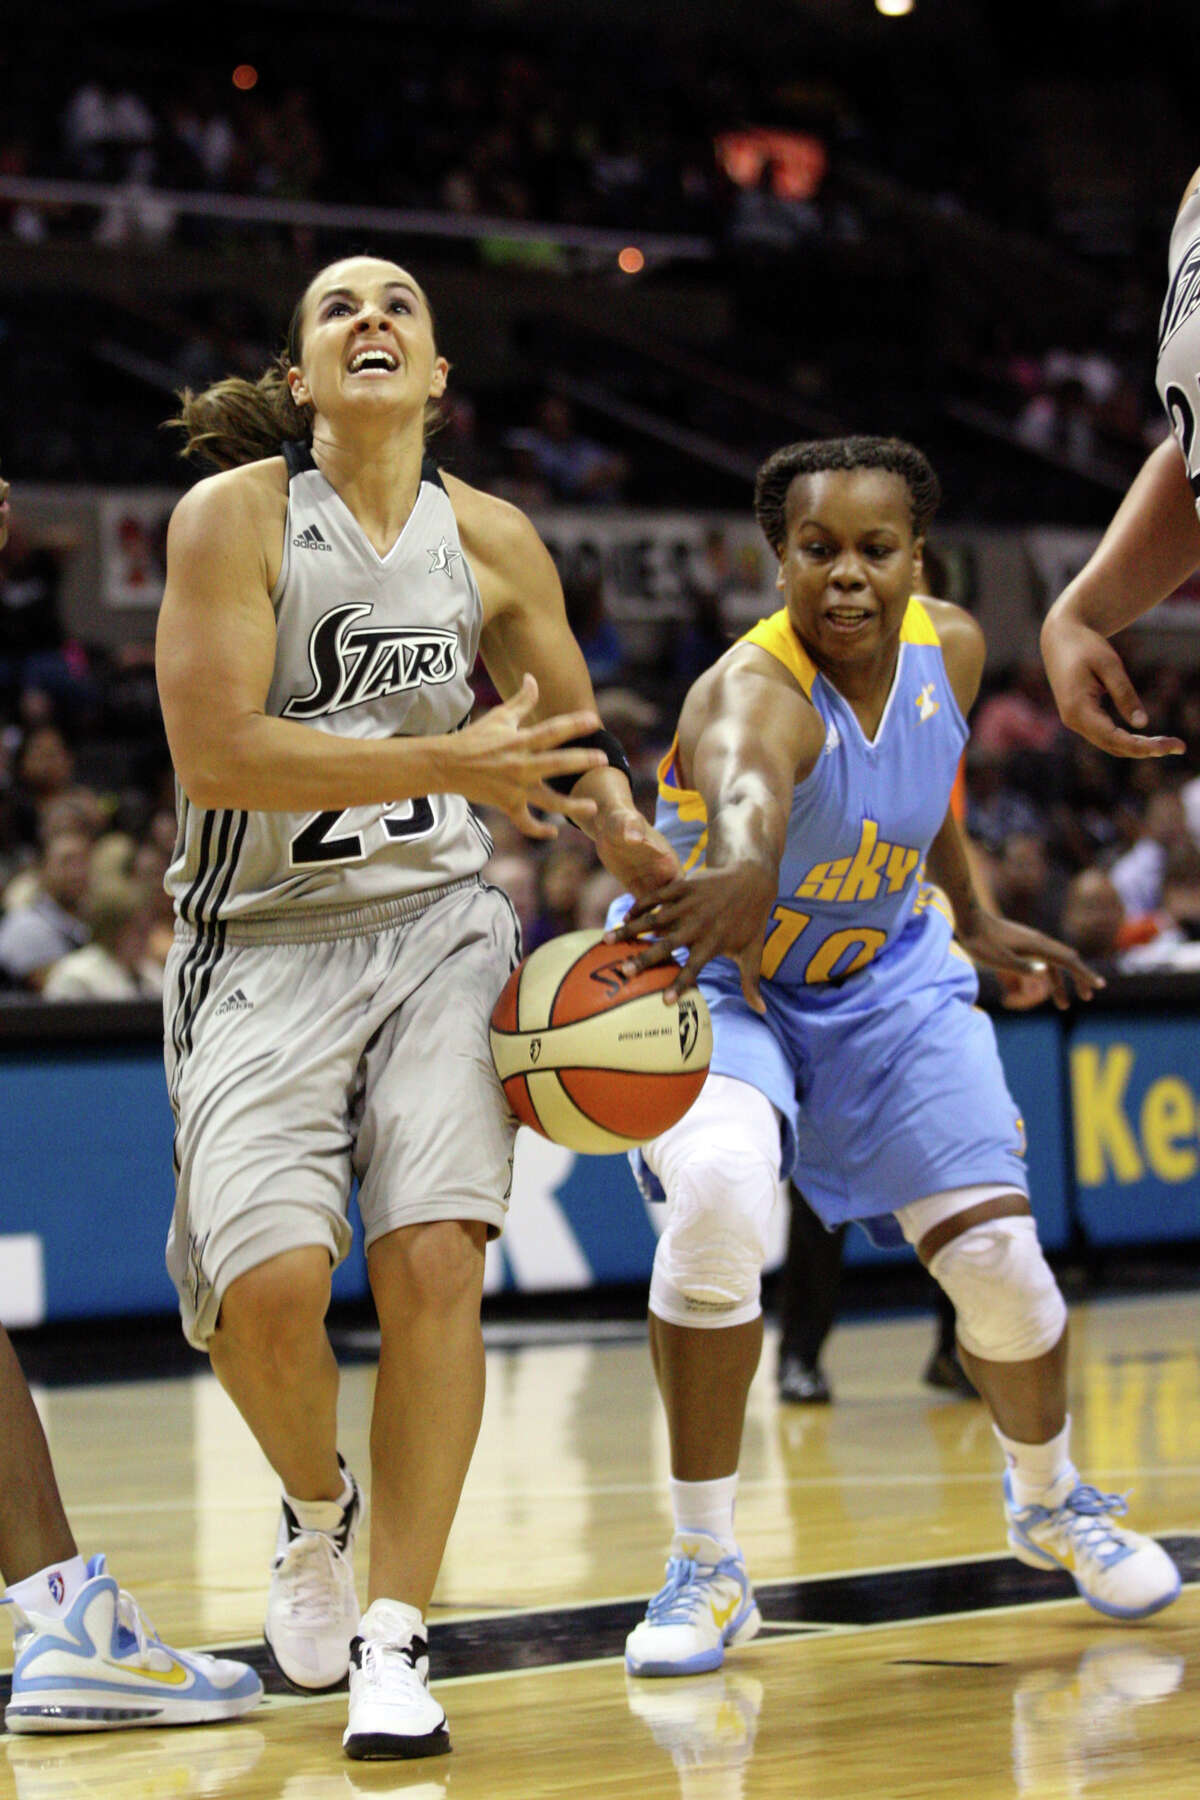 San Antonio Silver Stars' Becky Hammon gets the ball striped by Chicago Sky's Epiphanny Prince during the first half at the AT&T Center, Wednesday, May 30, 2012.